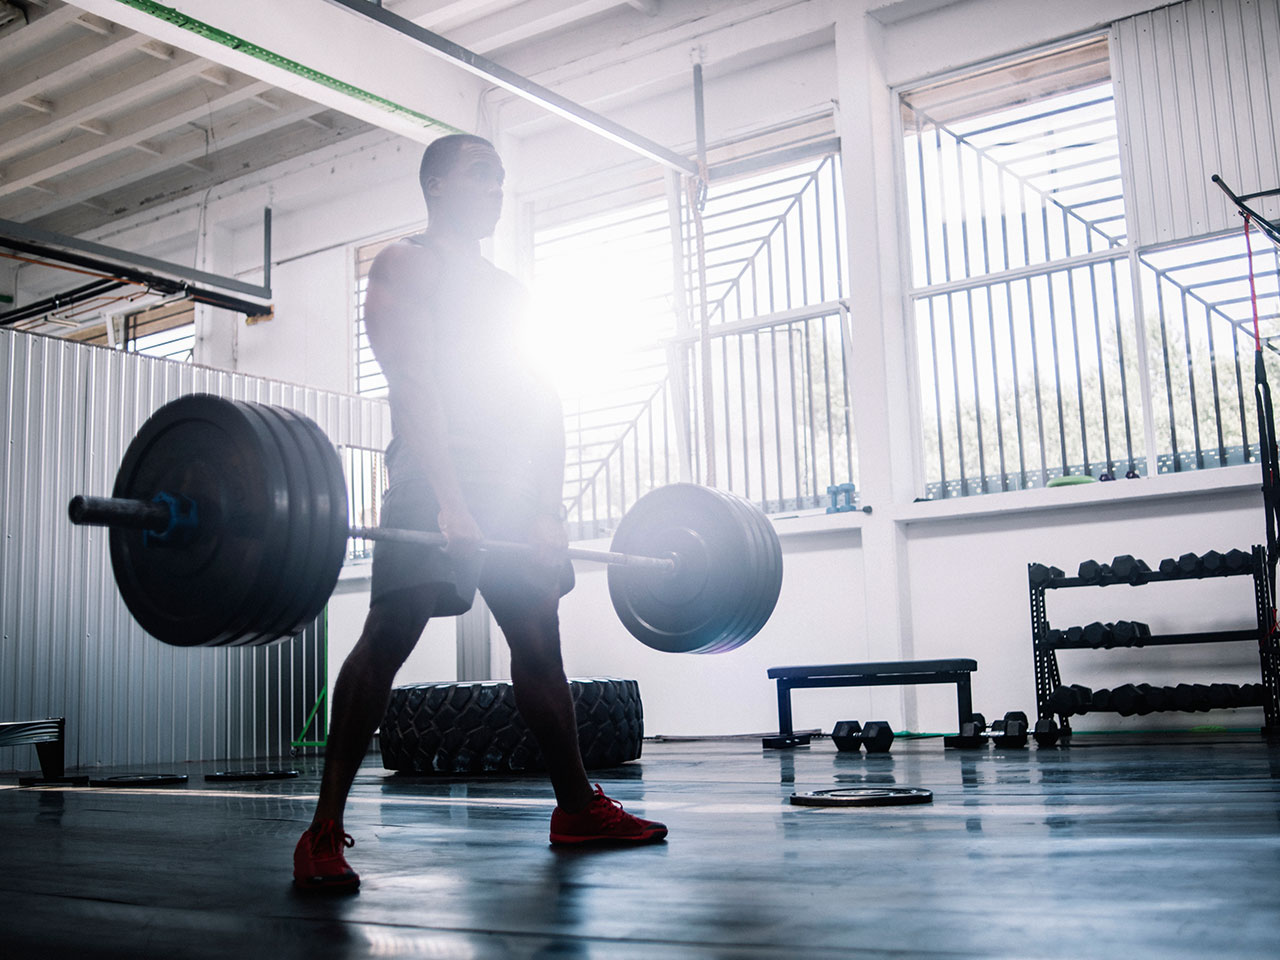 10 Ways to Build Strength Without the Size